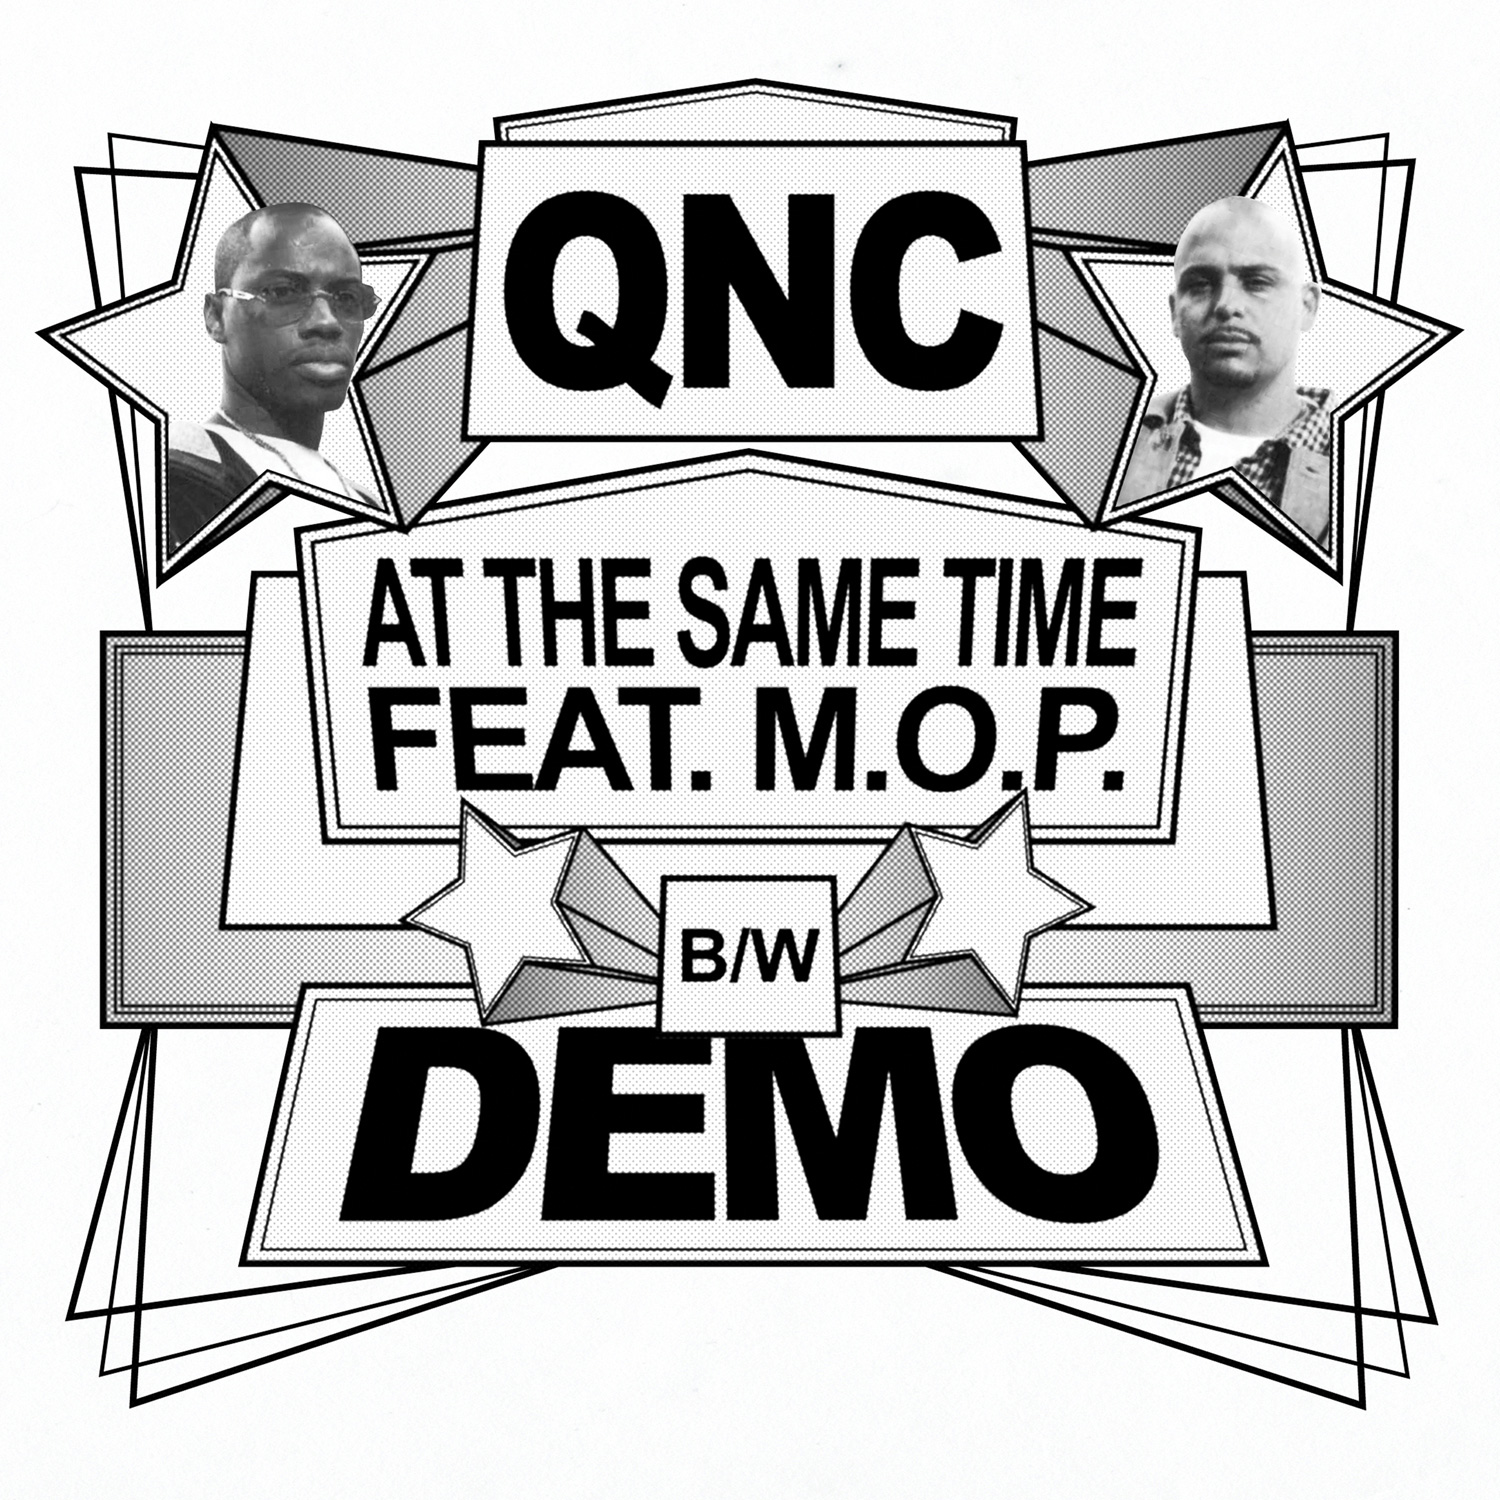 At_the_same_time_demo